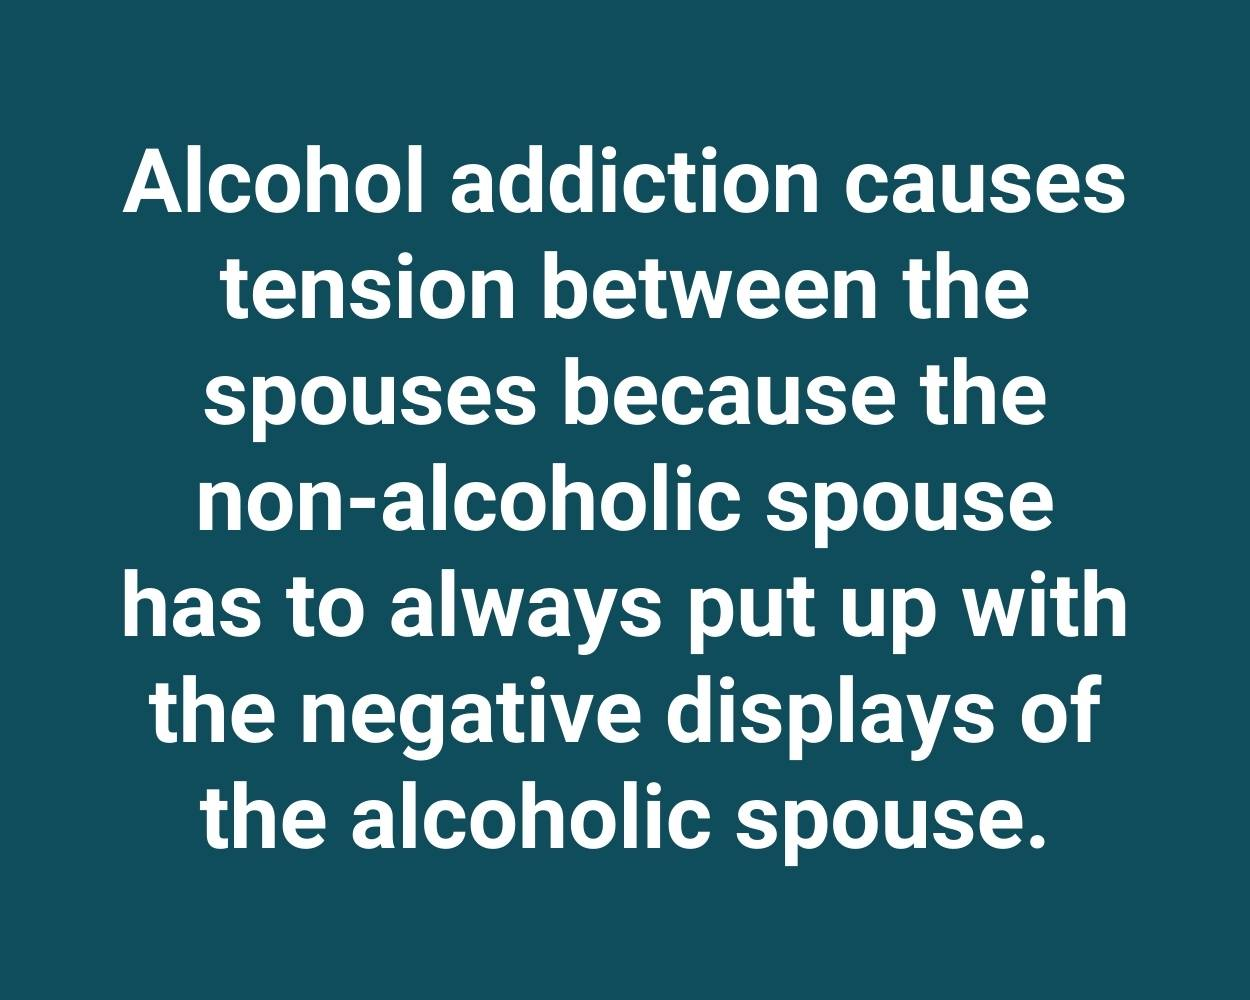 Alcohol addiction causes tension between the spouses